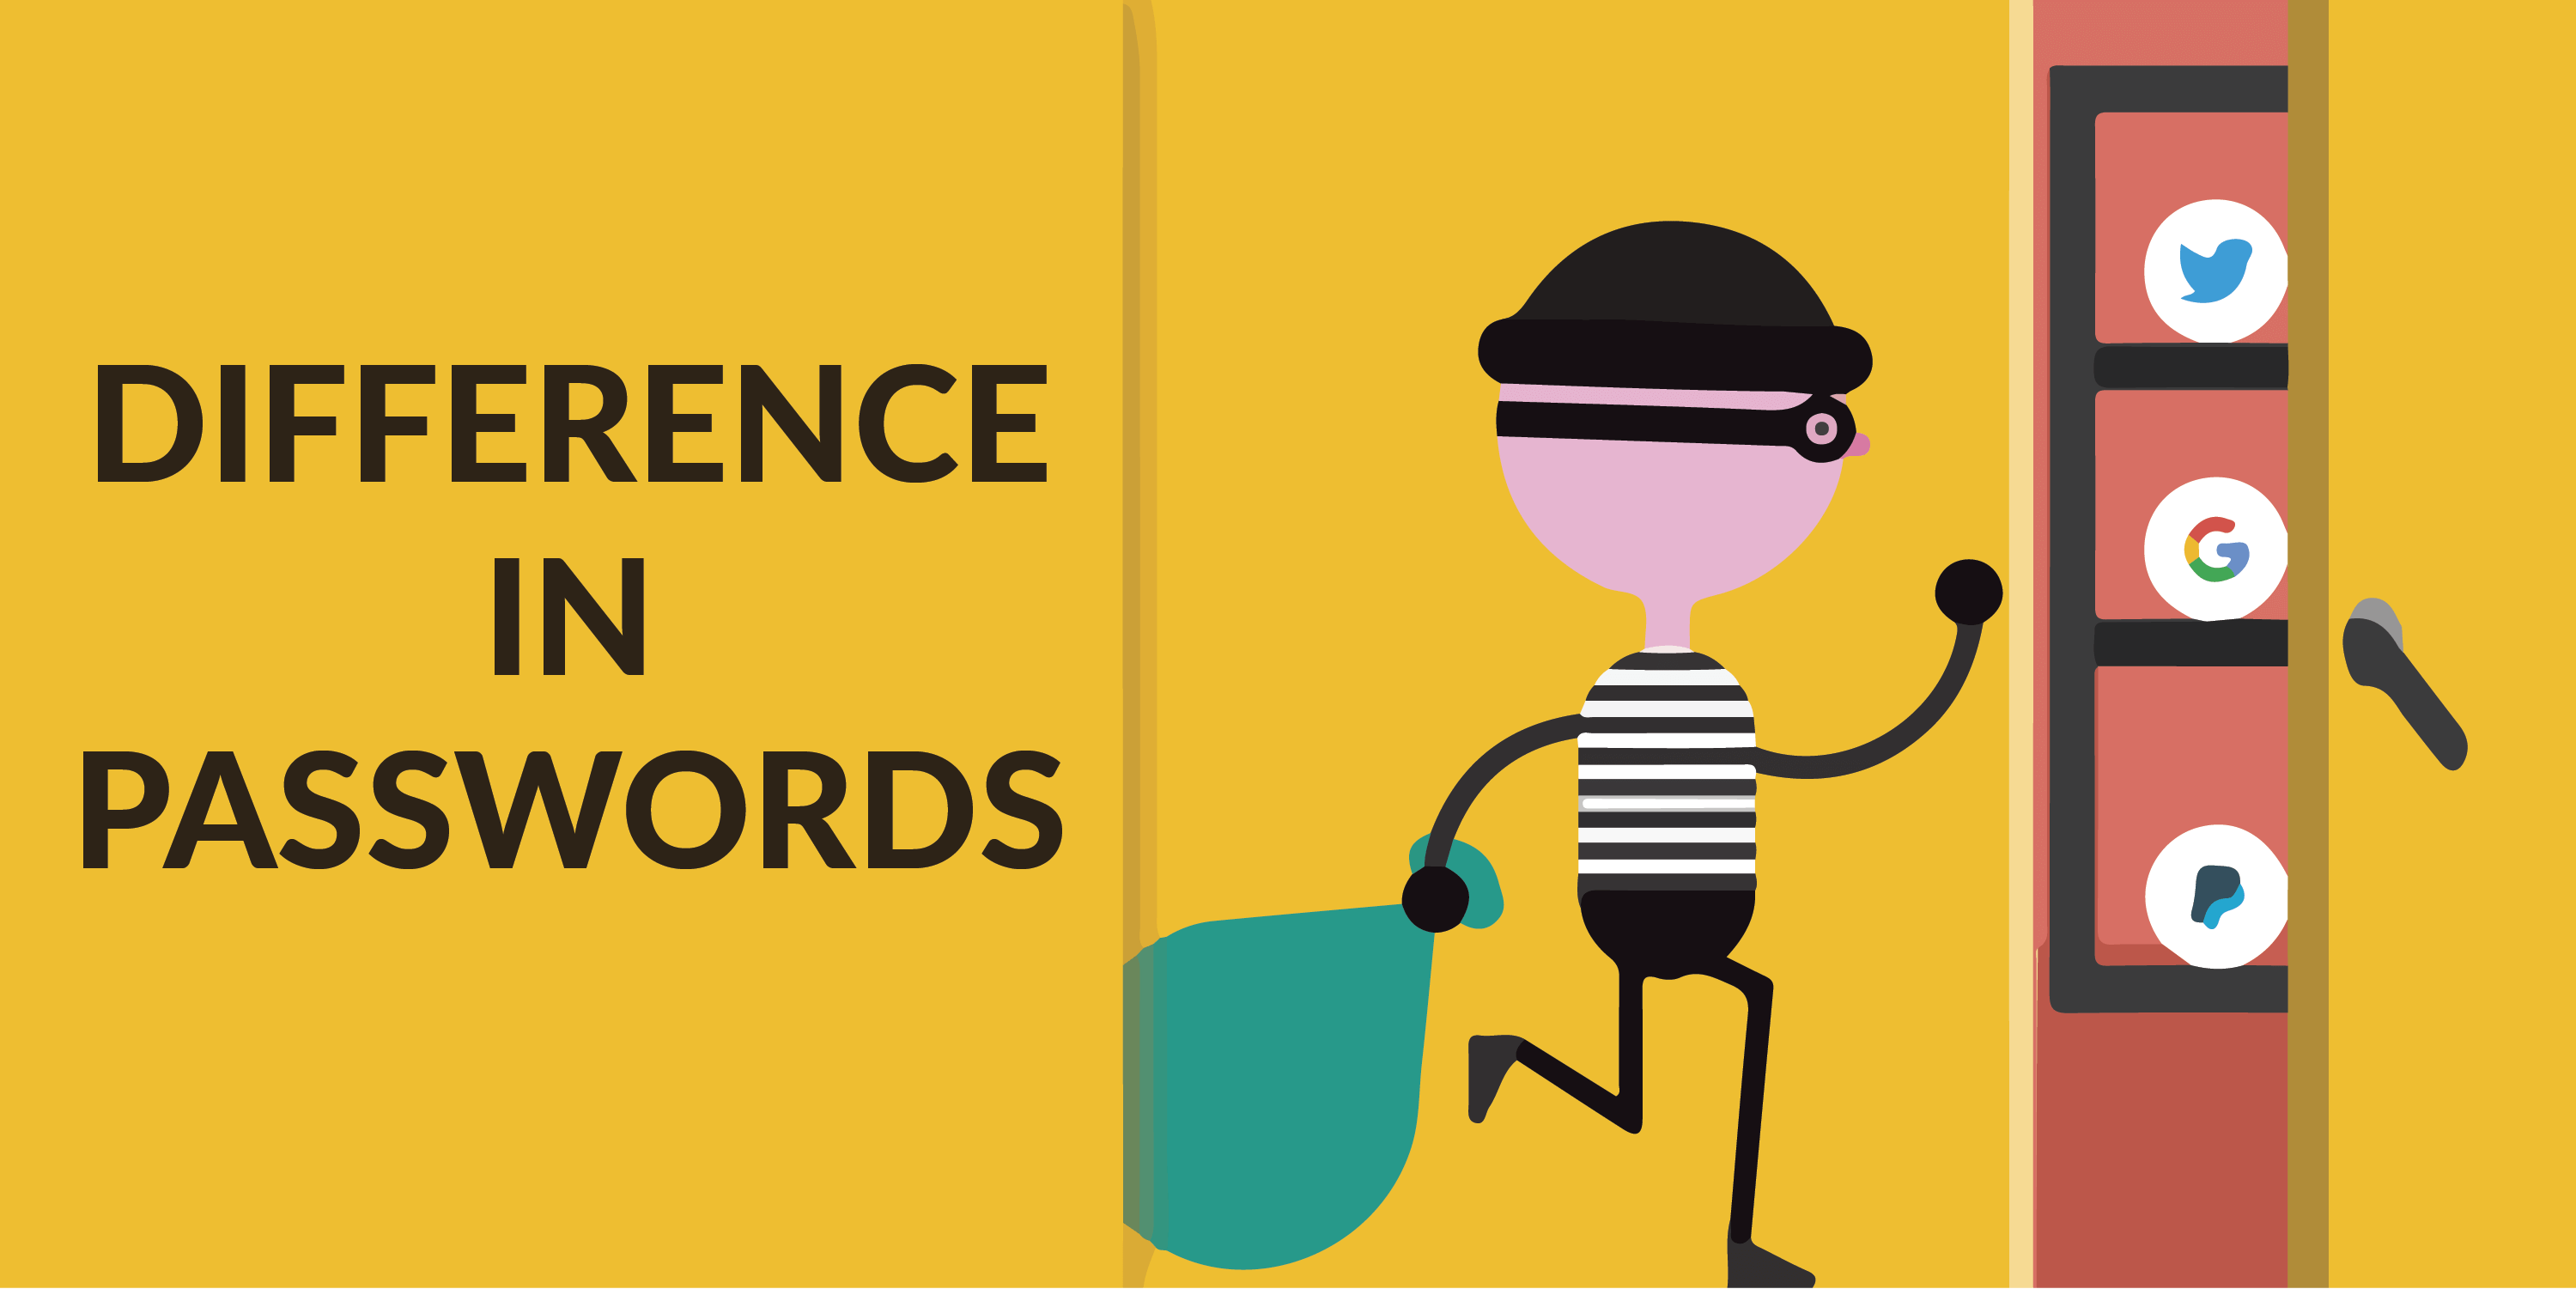 Difference in Passwords